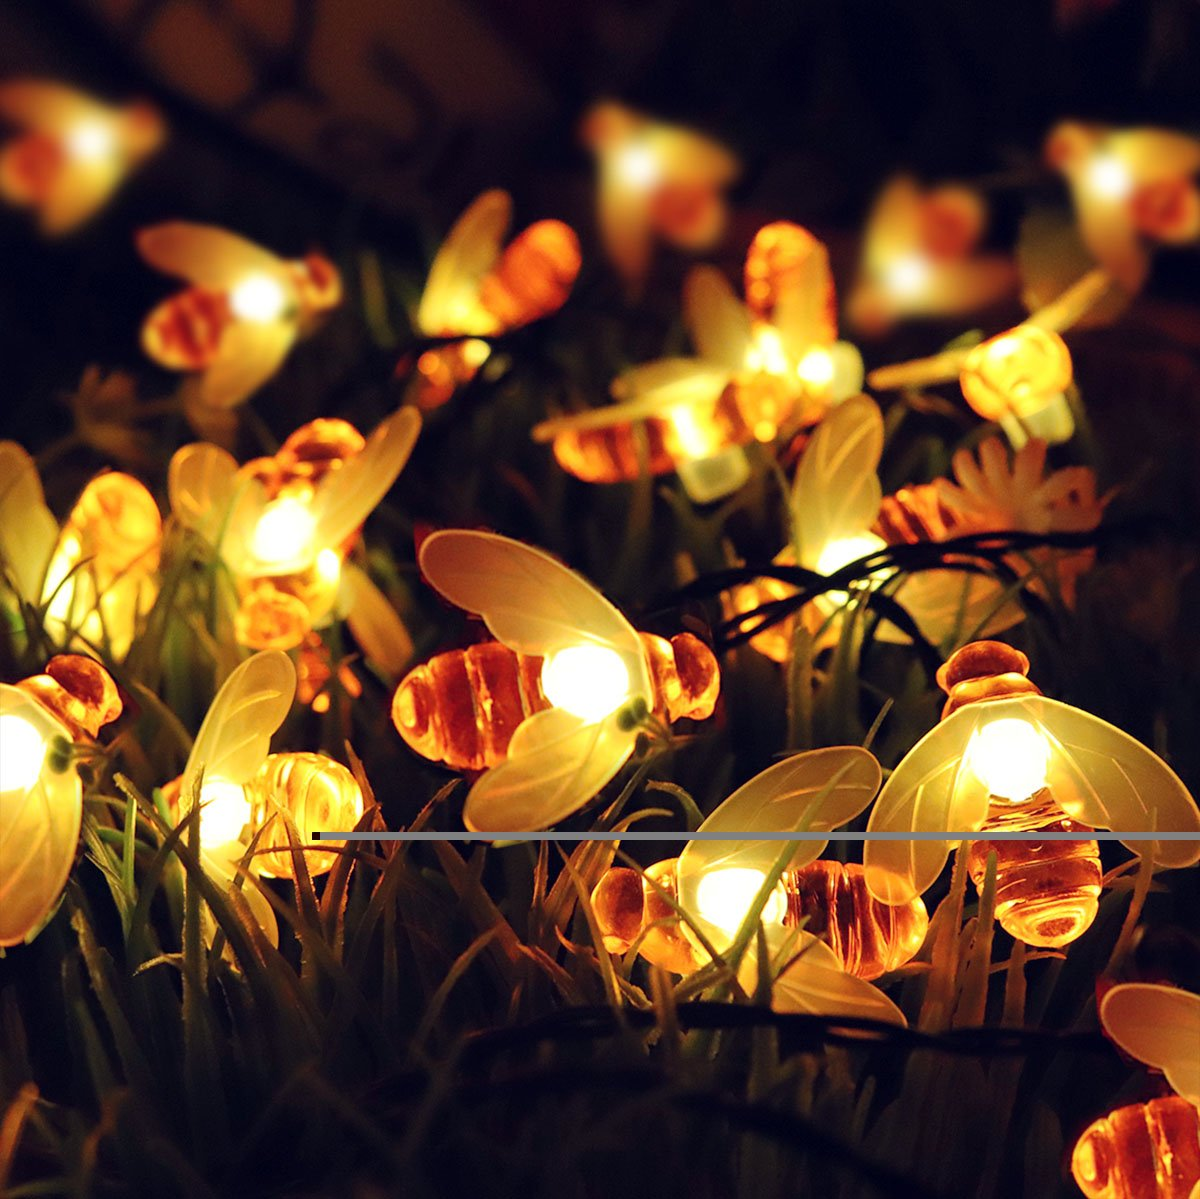 ACE HOME Solar String Lights, 8 Model 30 Led Honey Bee String Lights Starry Fairy Lights for Outdoor Garden Patio Trees Flower Fence Grass Lawn Landscape Holiday Decorations Warm White